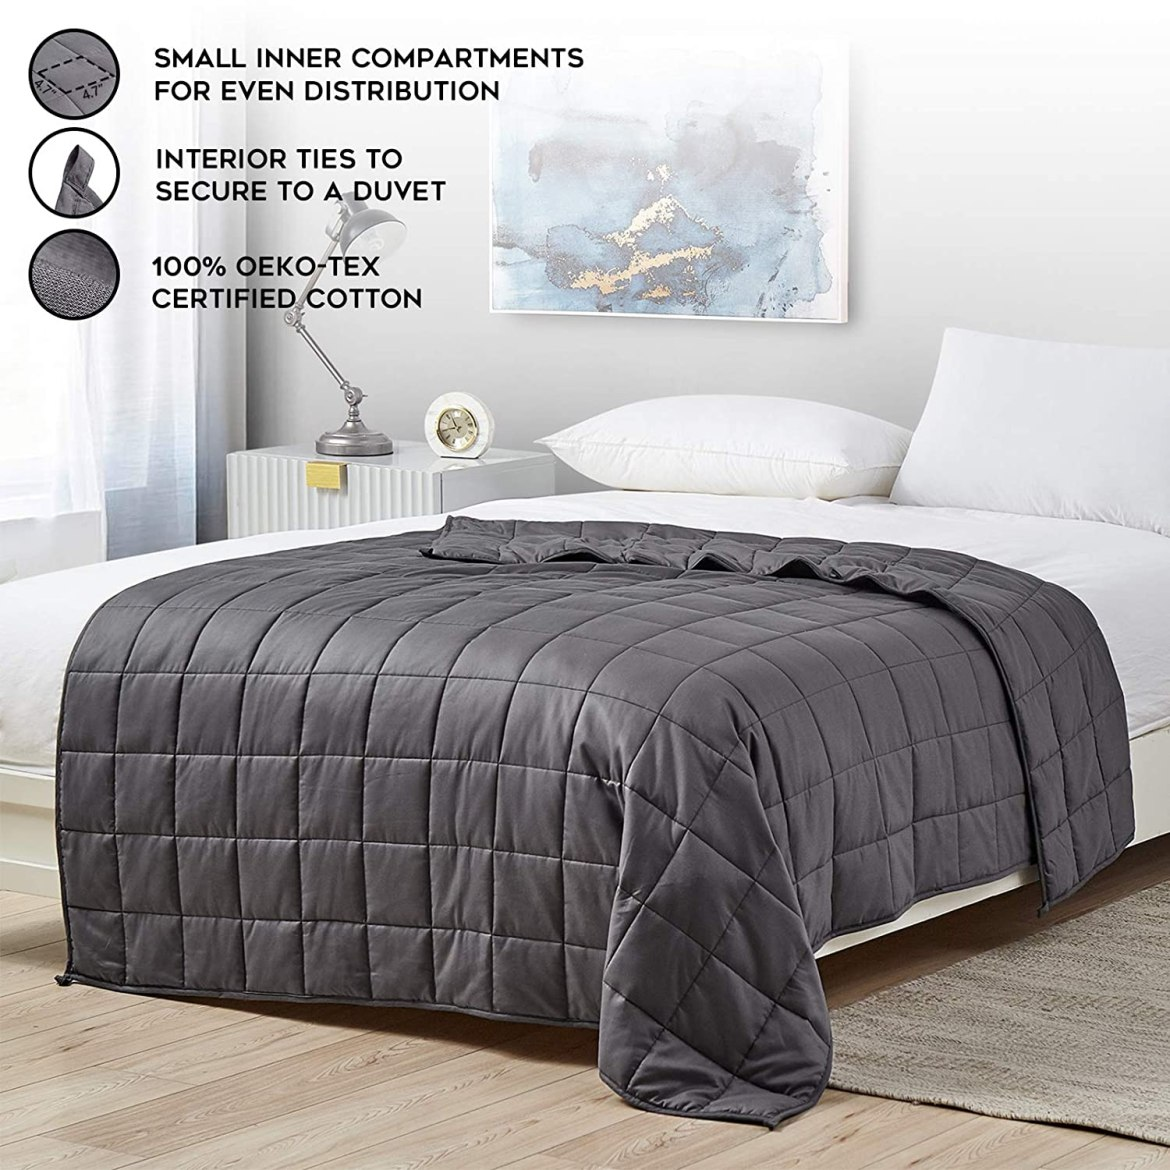 YnM Weighted Blanket — Heavy 100% Oeko-Tex Certified Cotton Material with Premium Glass Beads (Dark Grey, 80''x87'' 20lbs), Two Persons(90~160lb) Sharing Use on Queen/King Bed | A Duvet Included